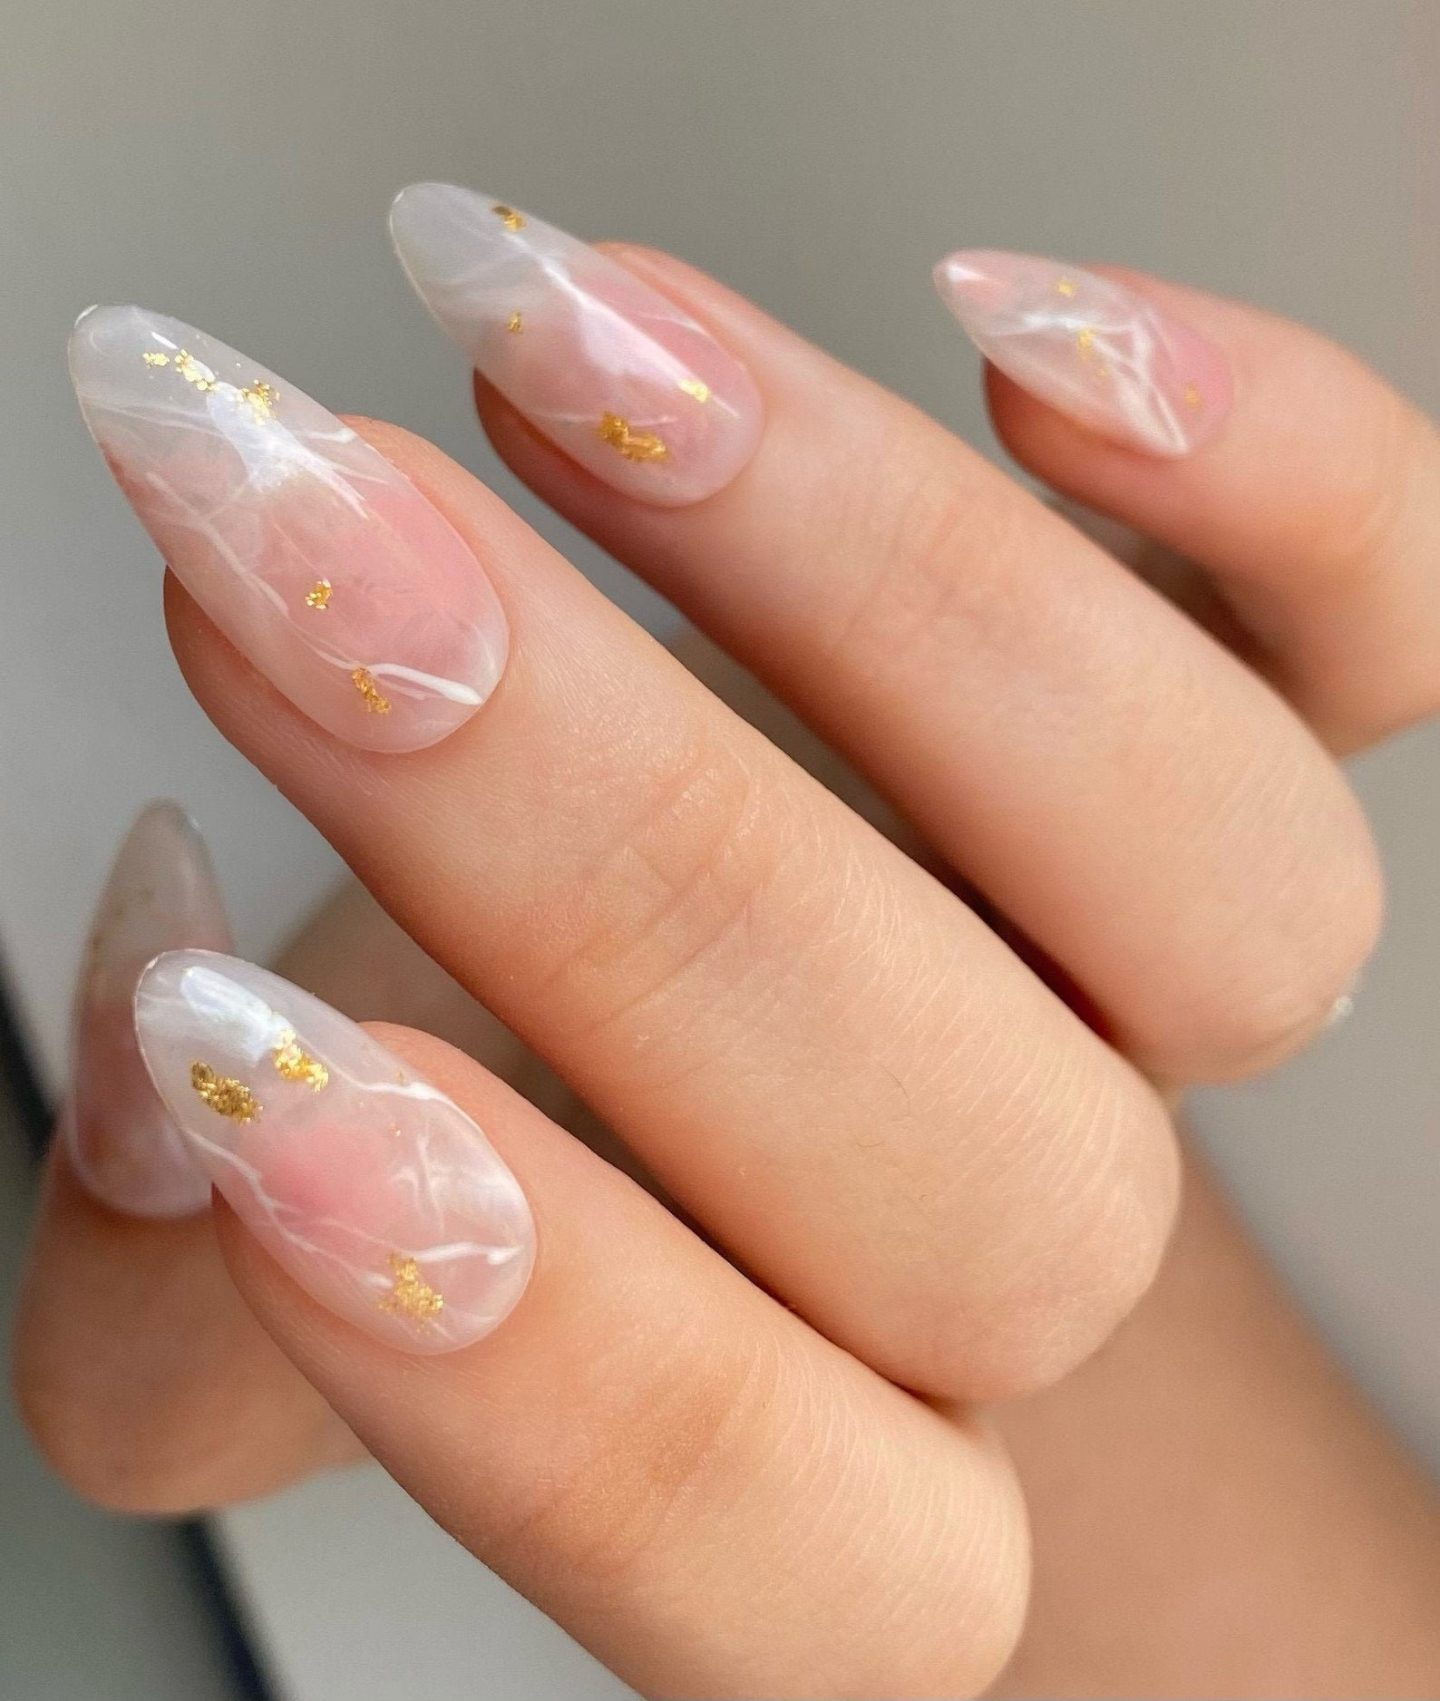 Cute white marble gemstone nails with gold flakes